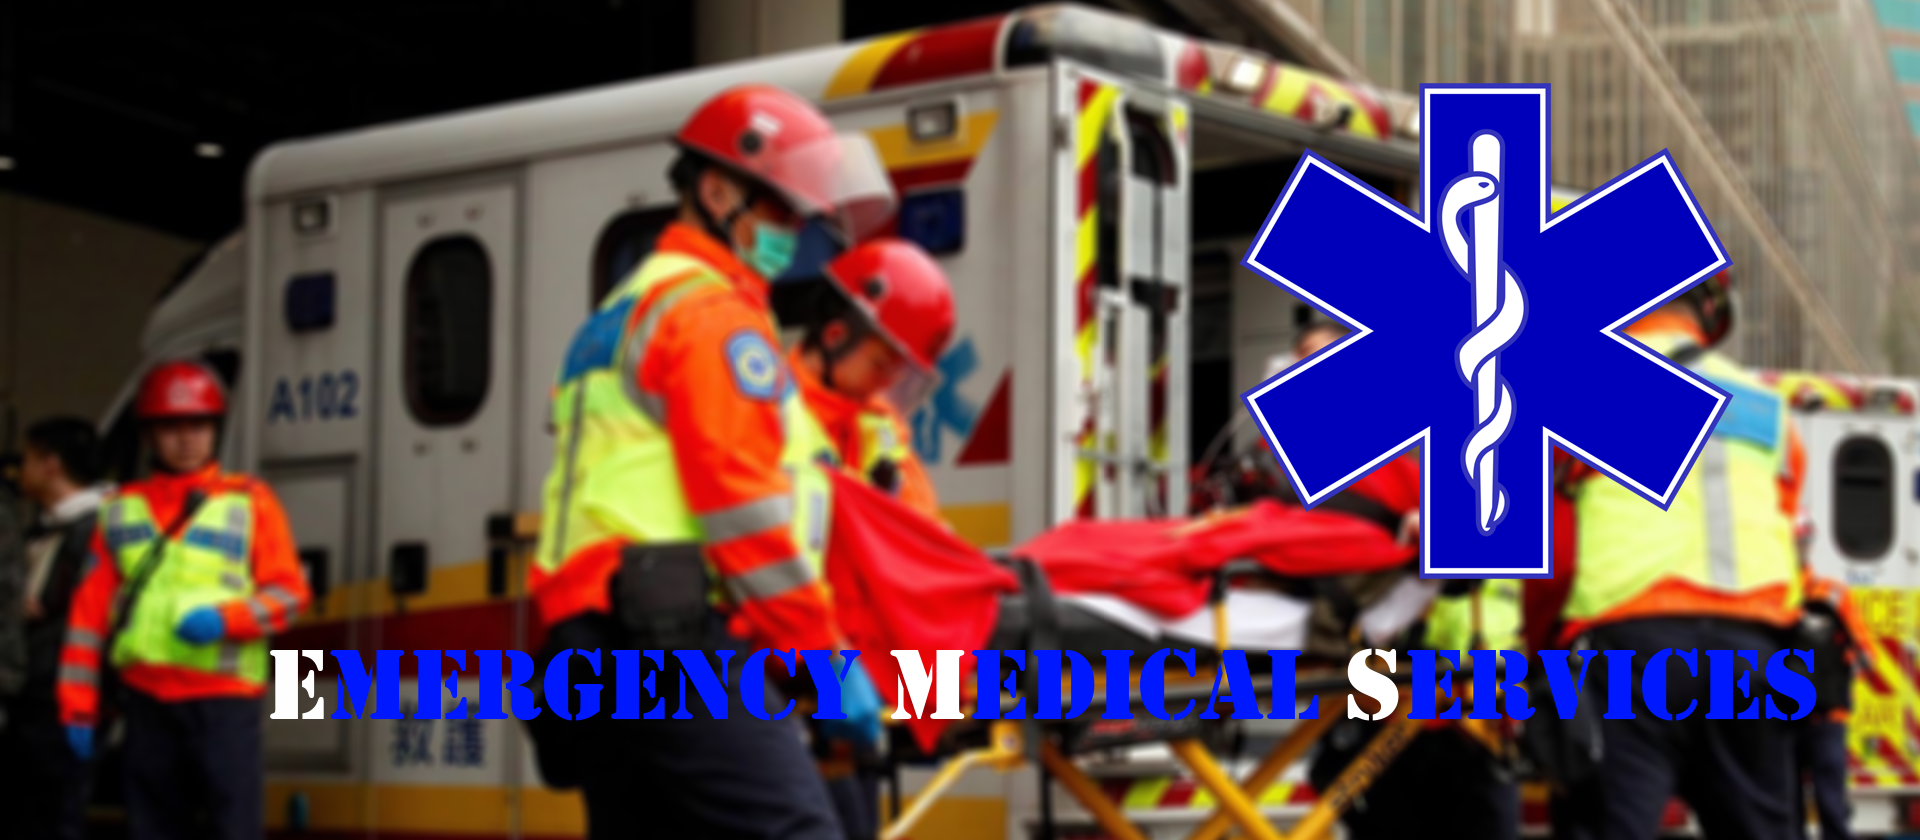 ems products, emt souvenir